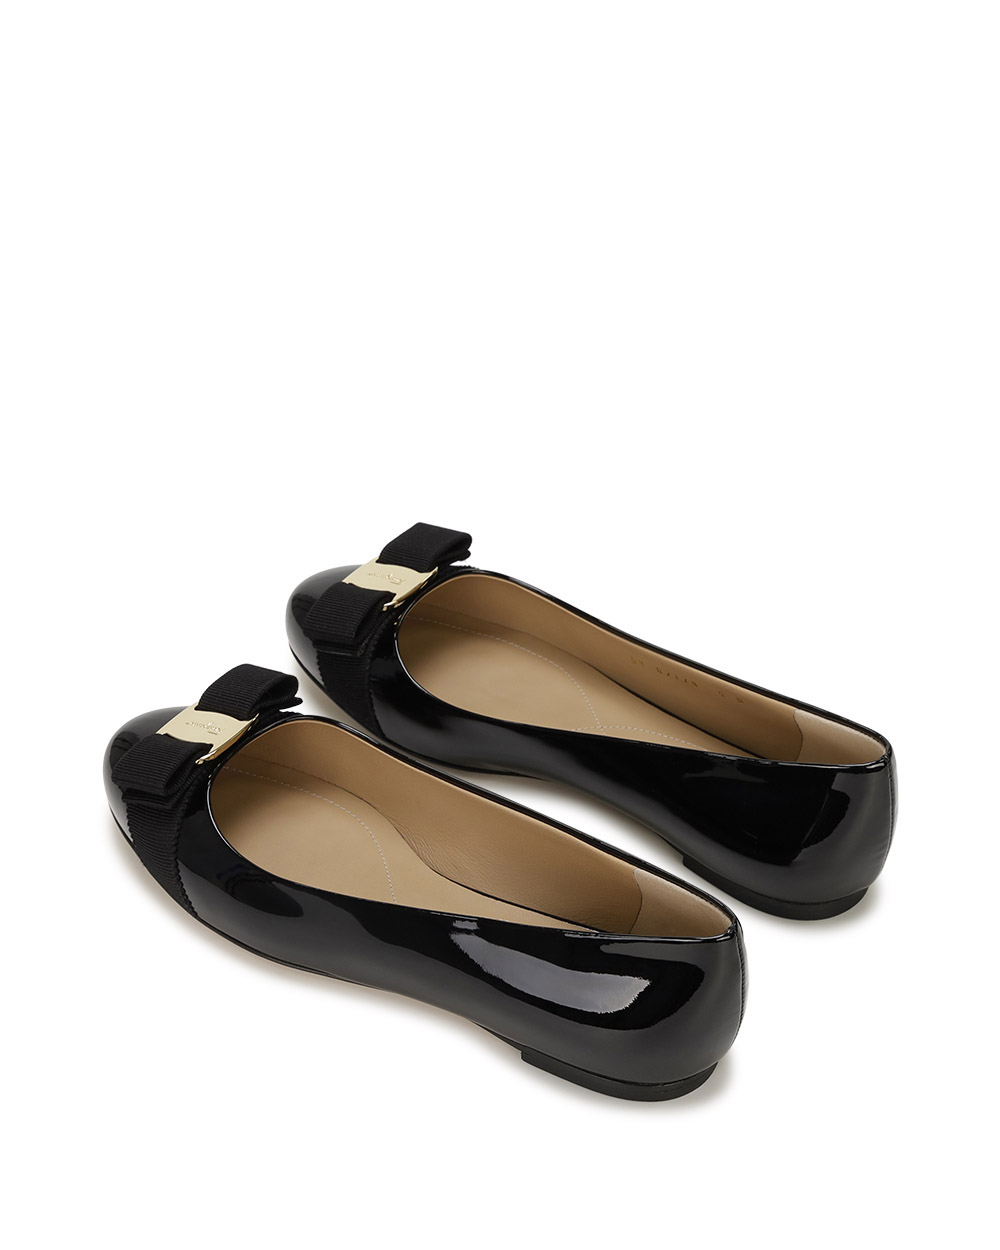 Leather Flat Shoes 2